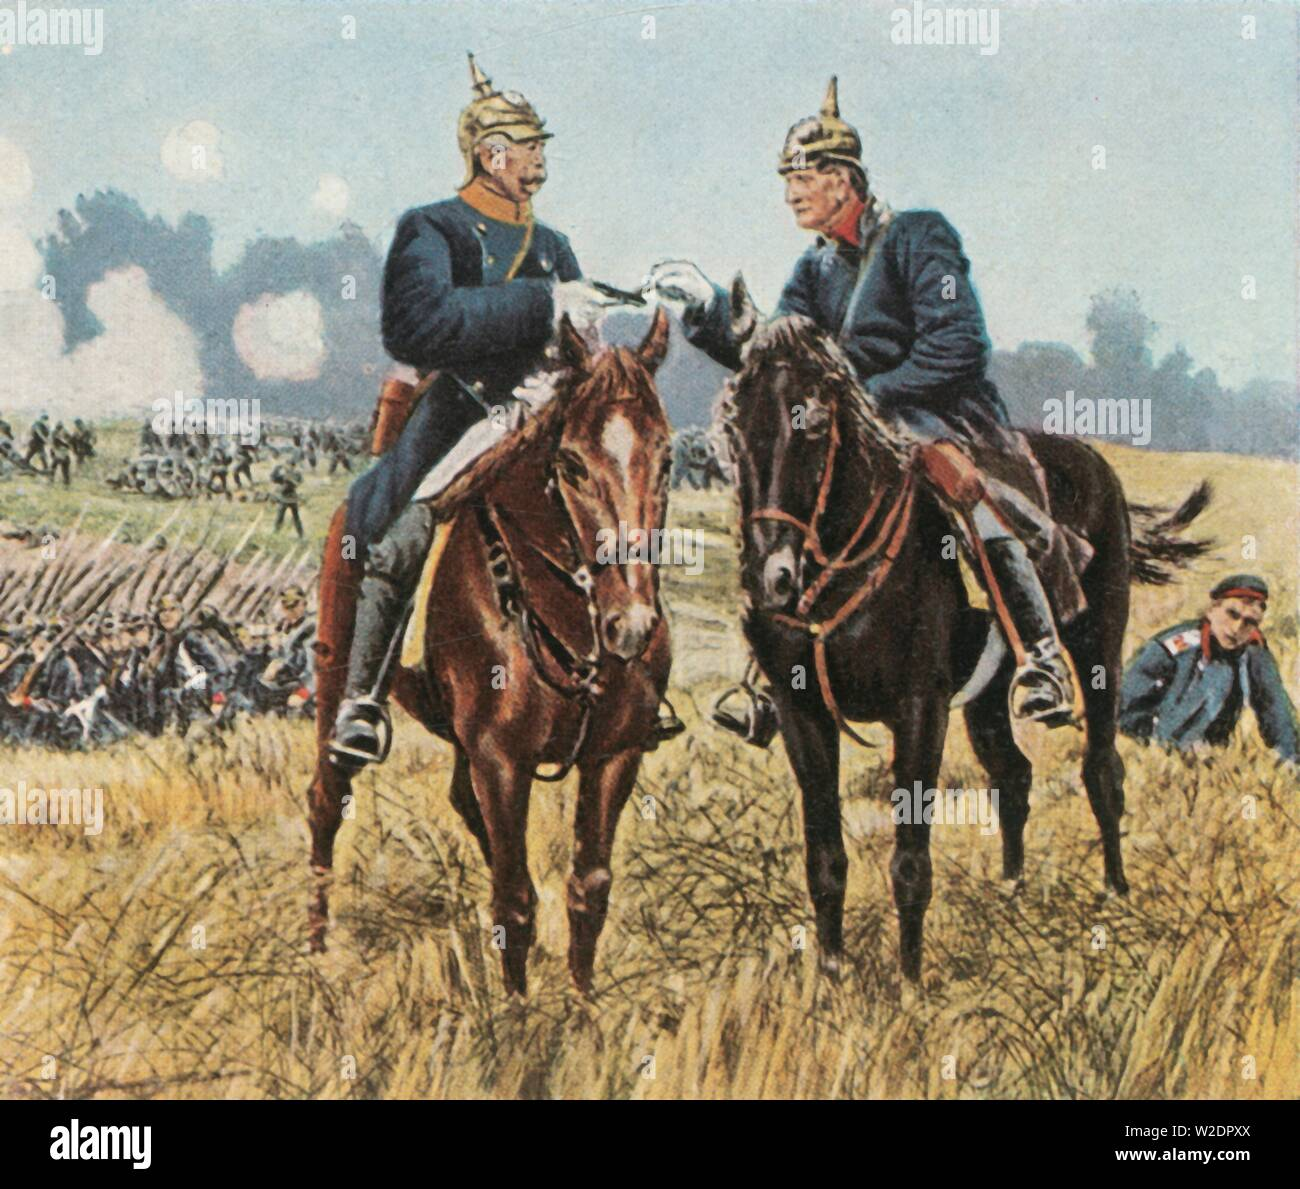 "Bismarck and Moltke at Königgratz, 3 July 1866, (1936). 'Bismarck Und Moltke Bei Königgrätz, 3 Juli 1866'. Prussian officers Otto von Bismarck (1815-189) and Helmuth von Moltke (1800-1891) on the battlefield. The Battle of Königgrätz took place near Königgrätz in Bohemia (modern-day Hradec Králové in the Czech Republic). It was the decisive battle of the Austro-Prussian War in which the Kingdom of Prussia defeated the Austrian Empire. From ""Bilder Deutscher Geschichte"", (Pictures of German History), No.12, cigarette card album. [Cigaretten - Stock Image"